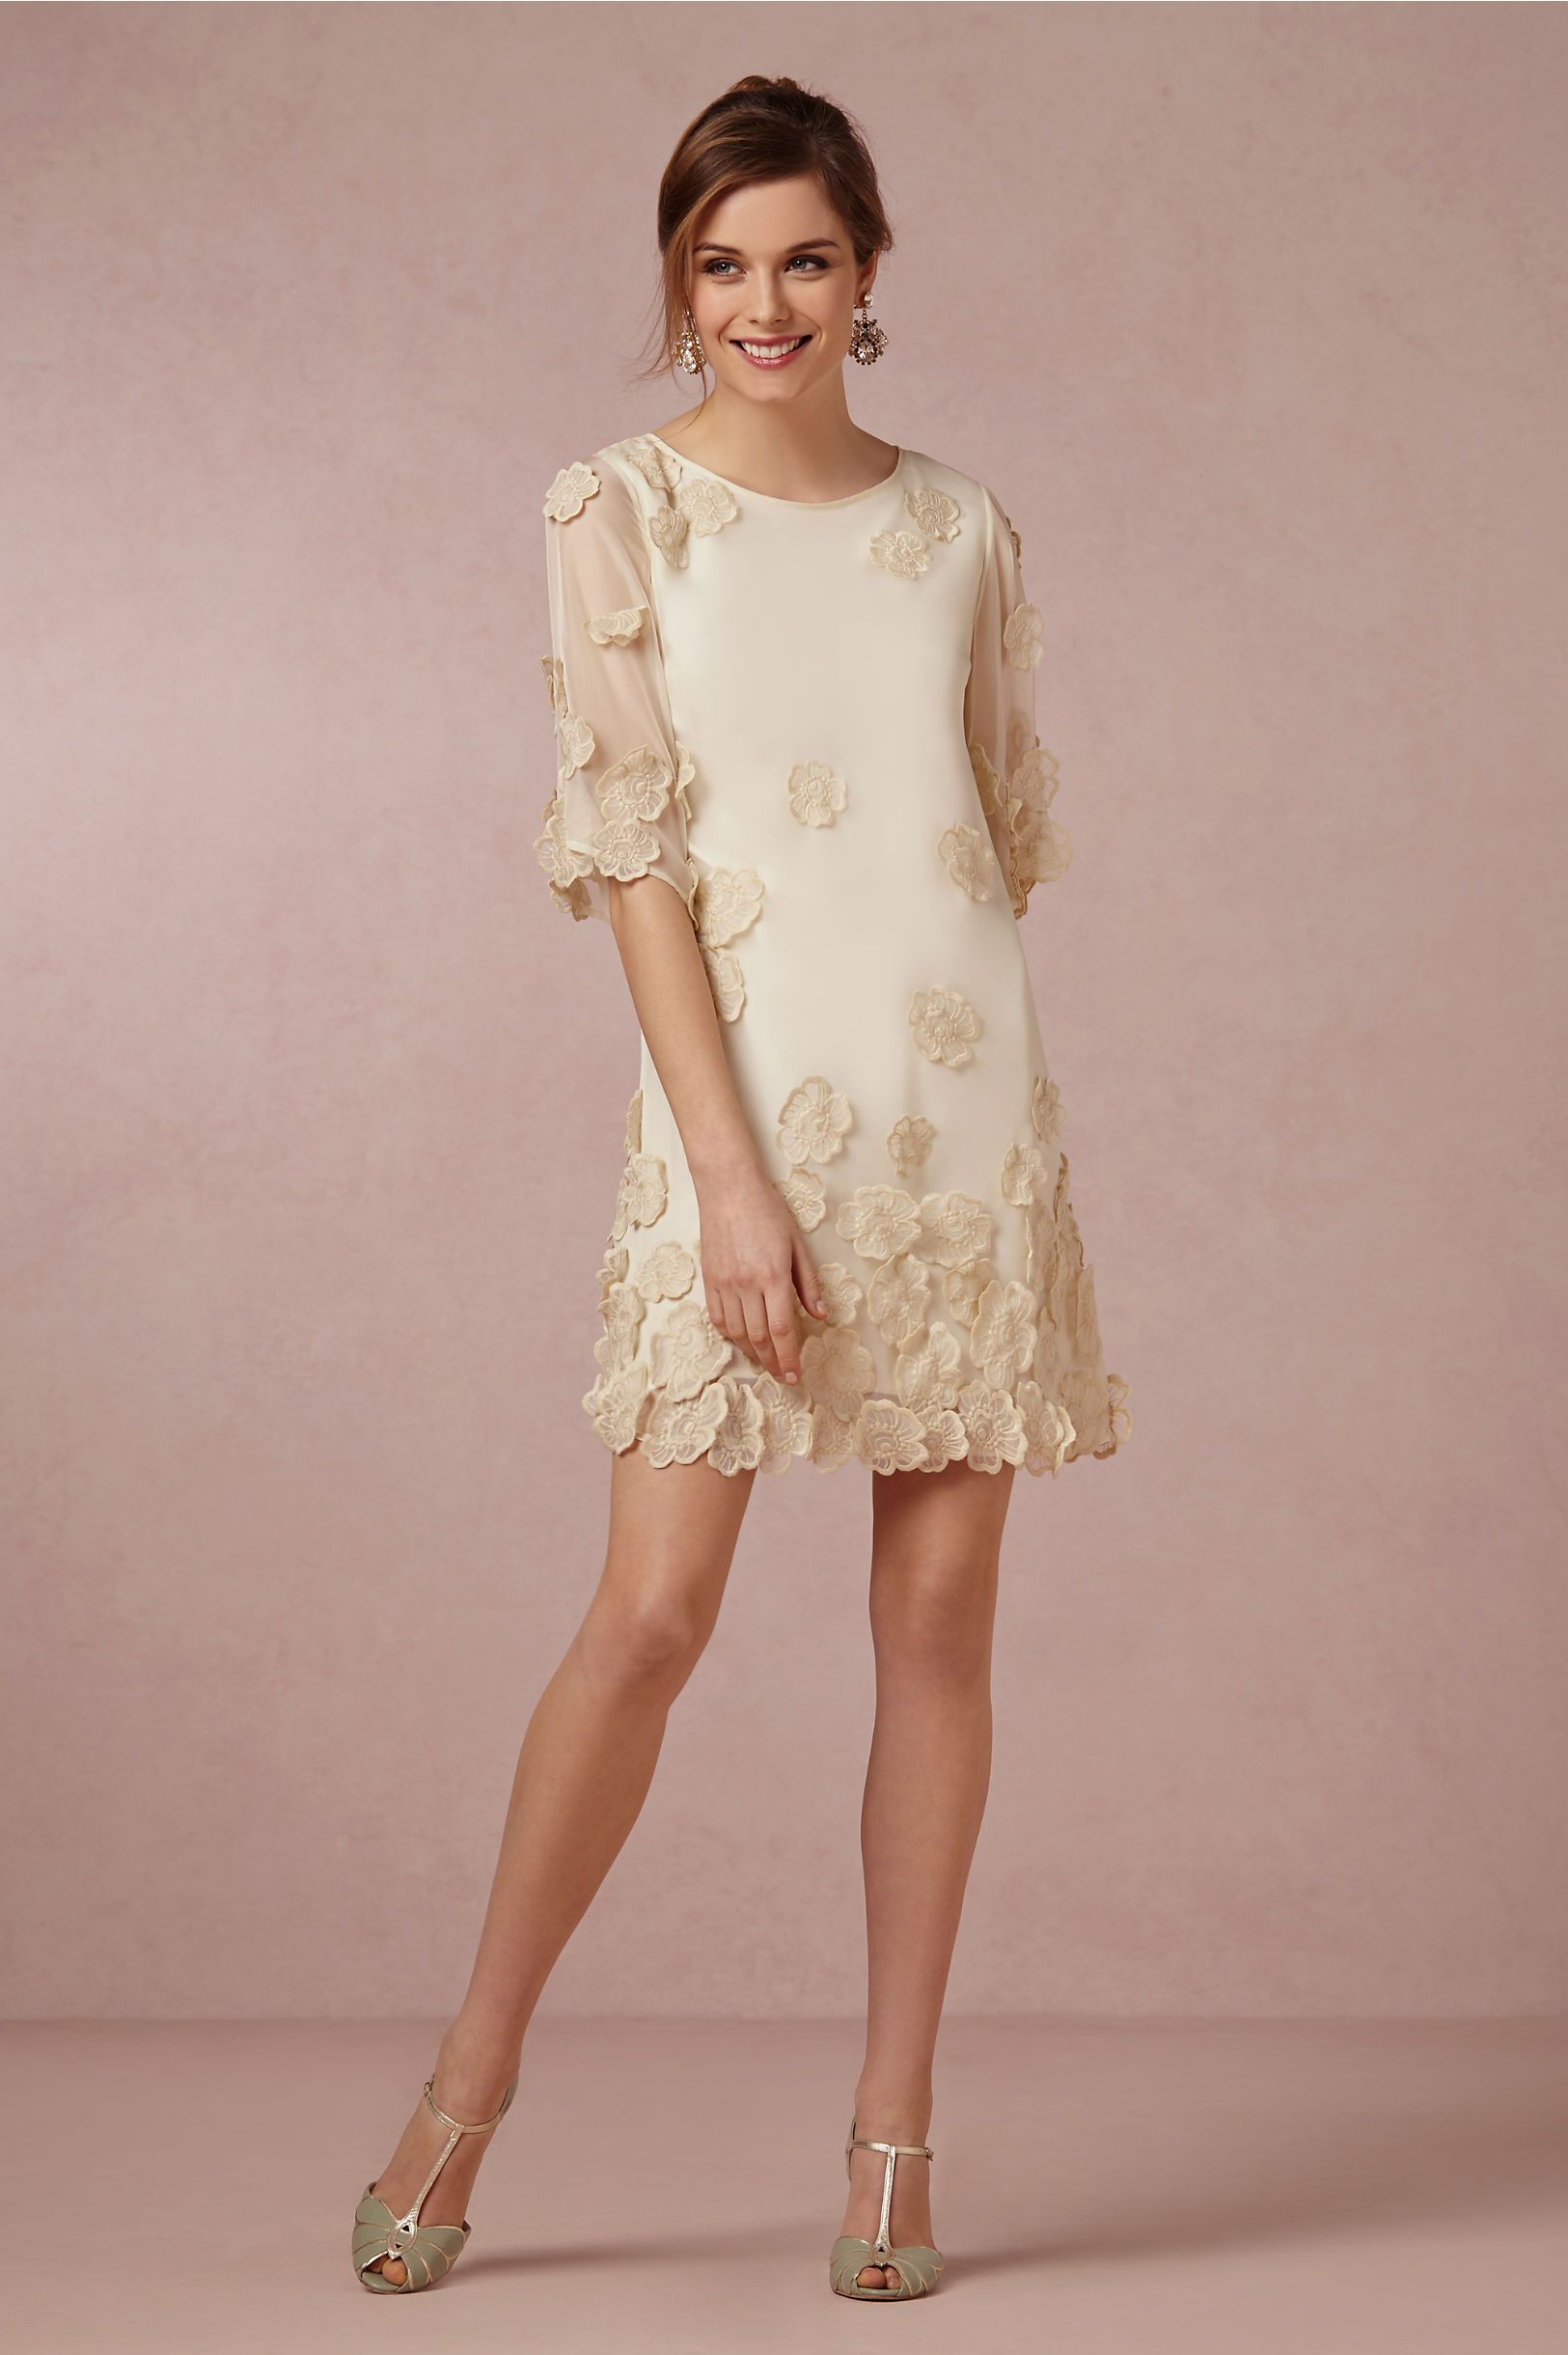 Gardenia Dress from BHLDN - Dress for a bridal party, engagement ...